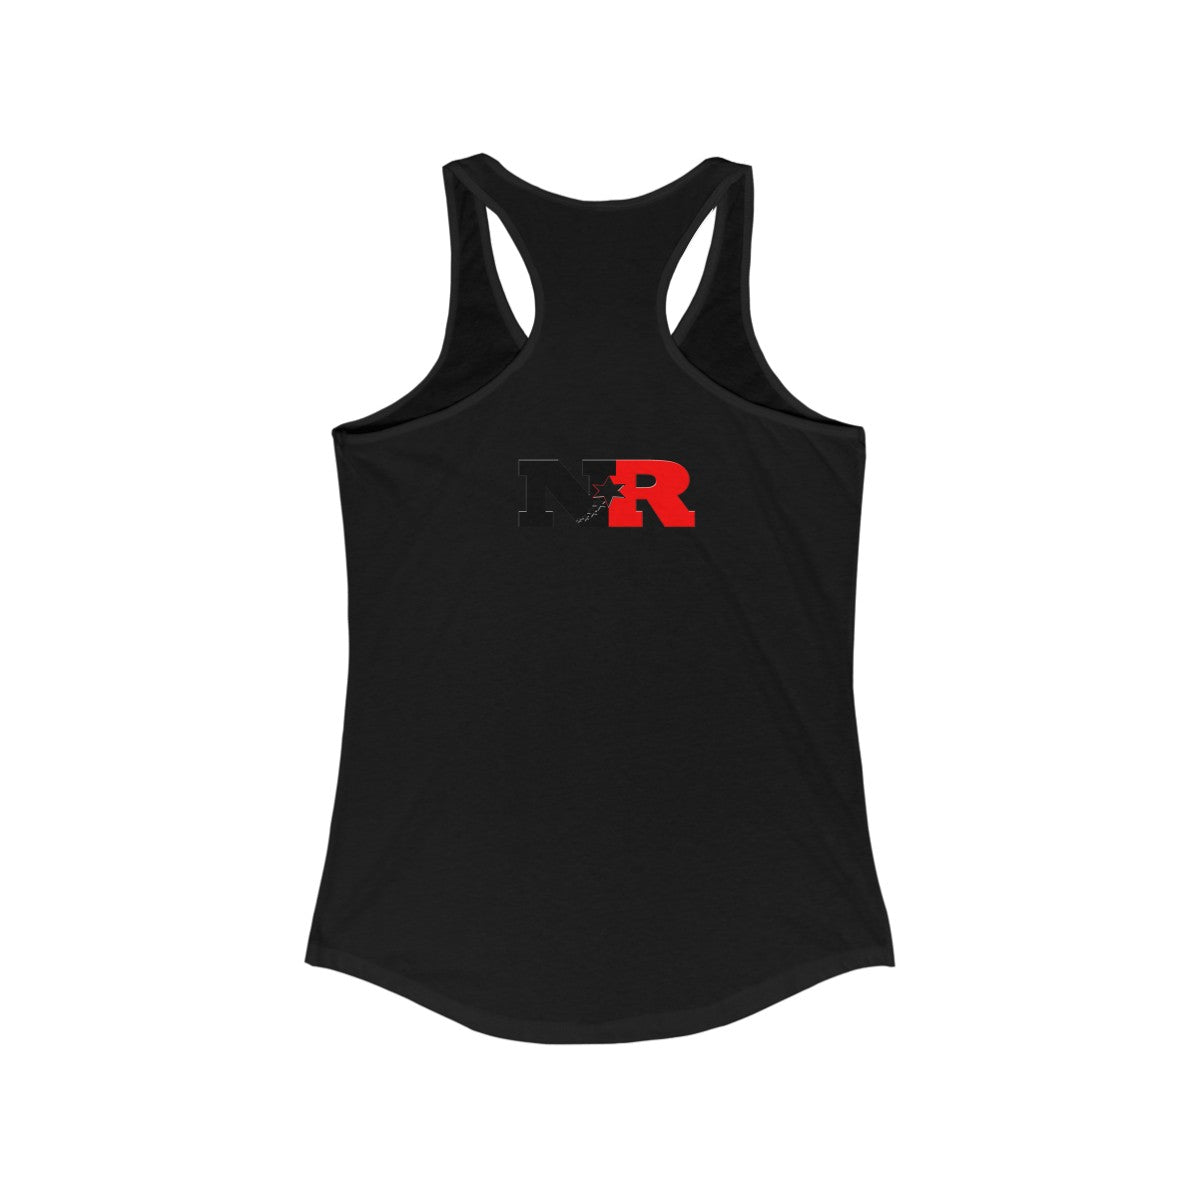 Women's Ideal Racerback Tank - 6 Points 5 Stars (White)